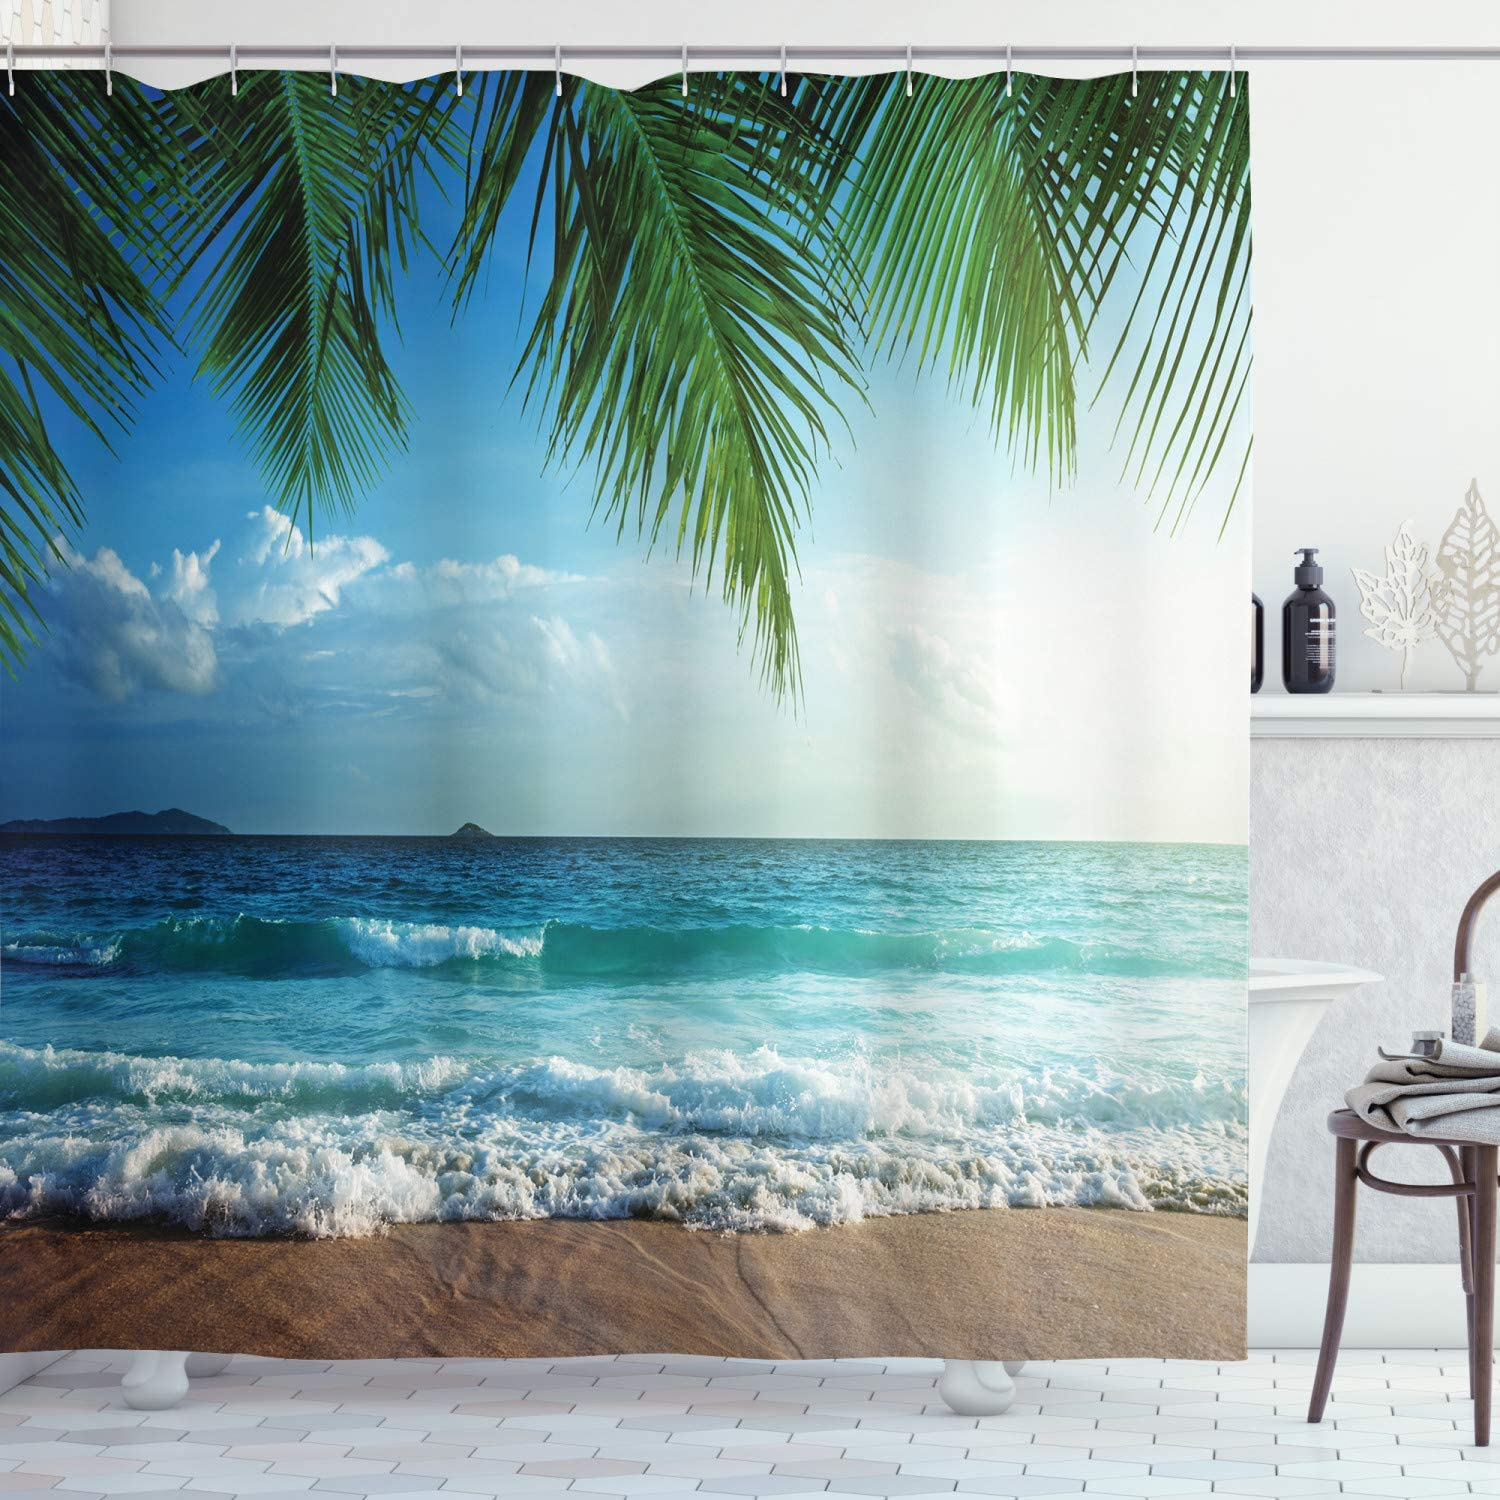 10 ways to go tropical for a relaxing and trendy home office.htm amazon com ambesonne palms ocean tropical island beach decor  ambesonne palms ocean tropical island